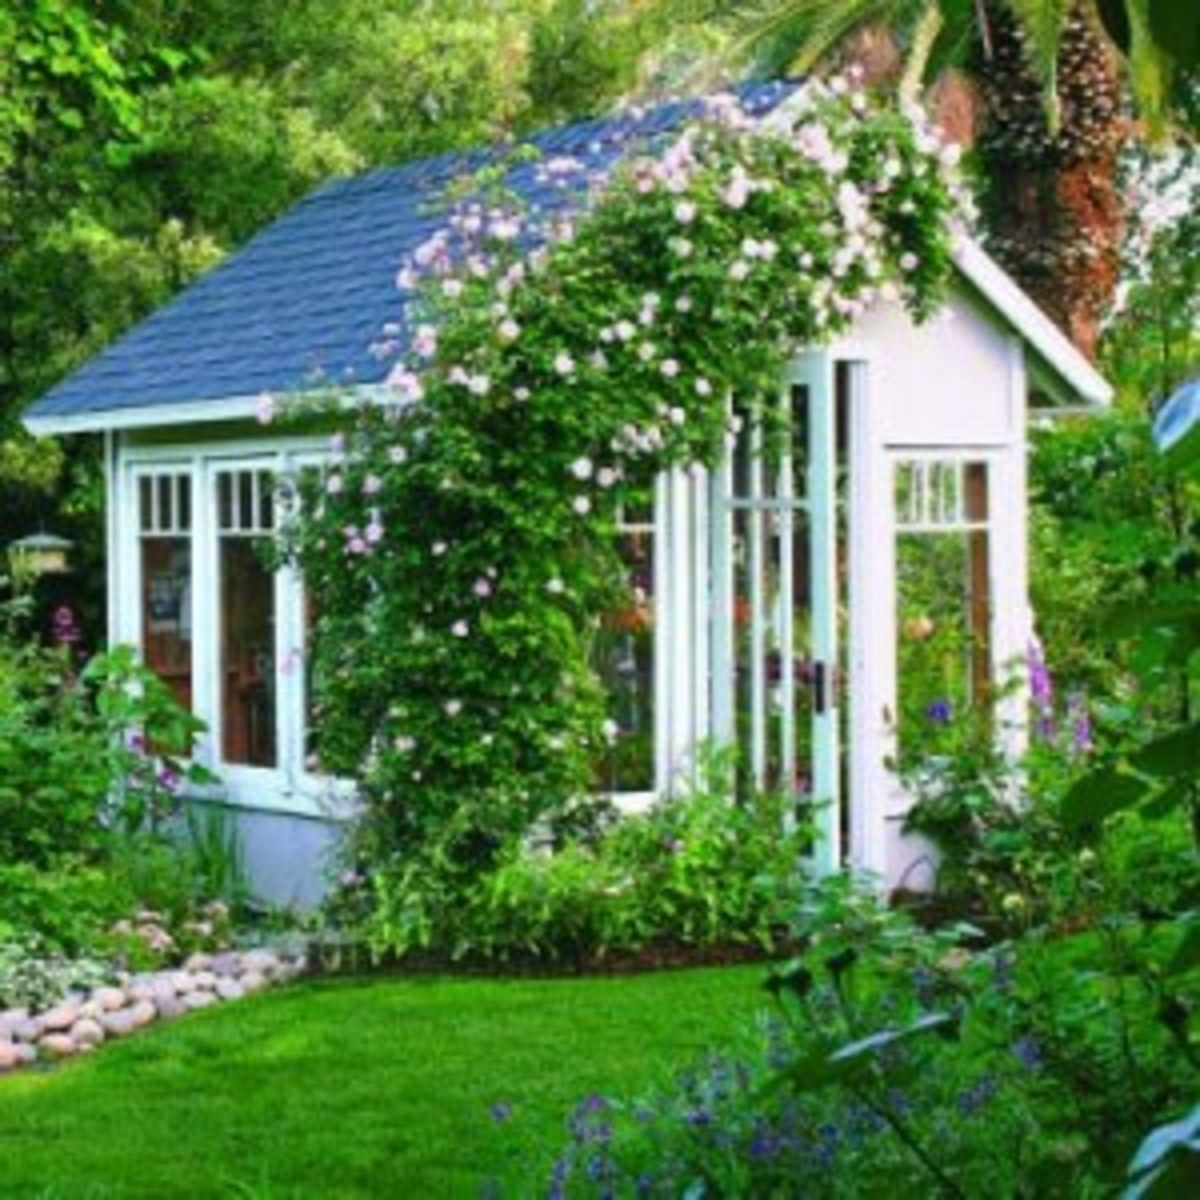 Beautiful Garden Shed with glass windows doors and climbing rose